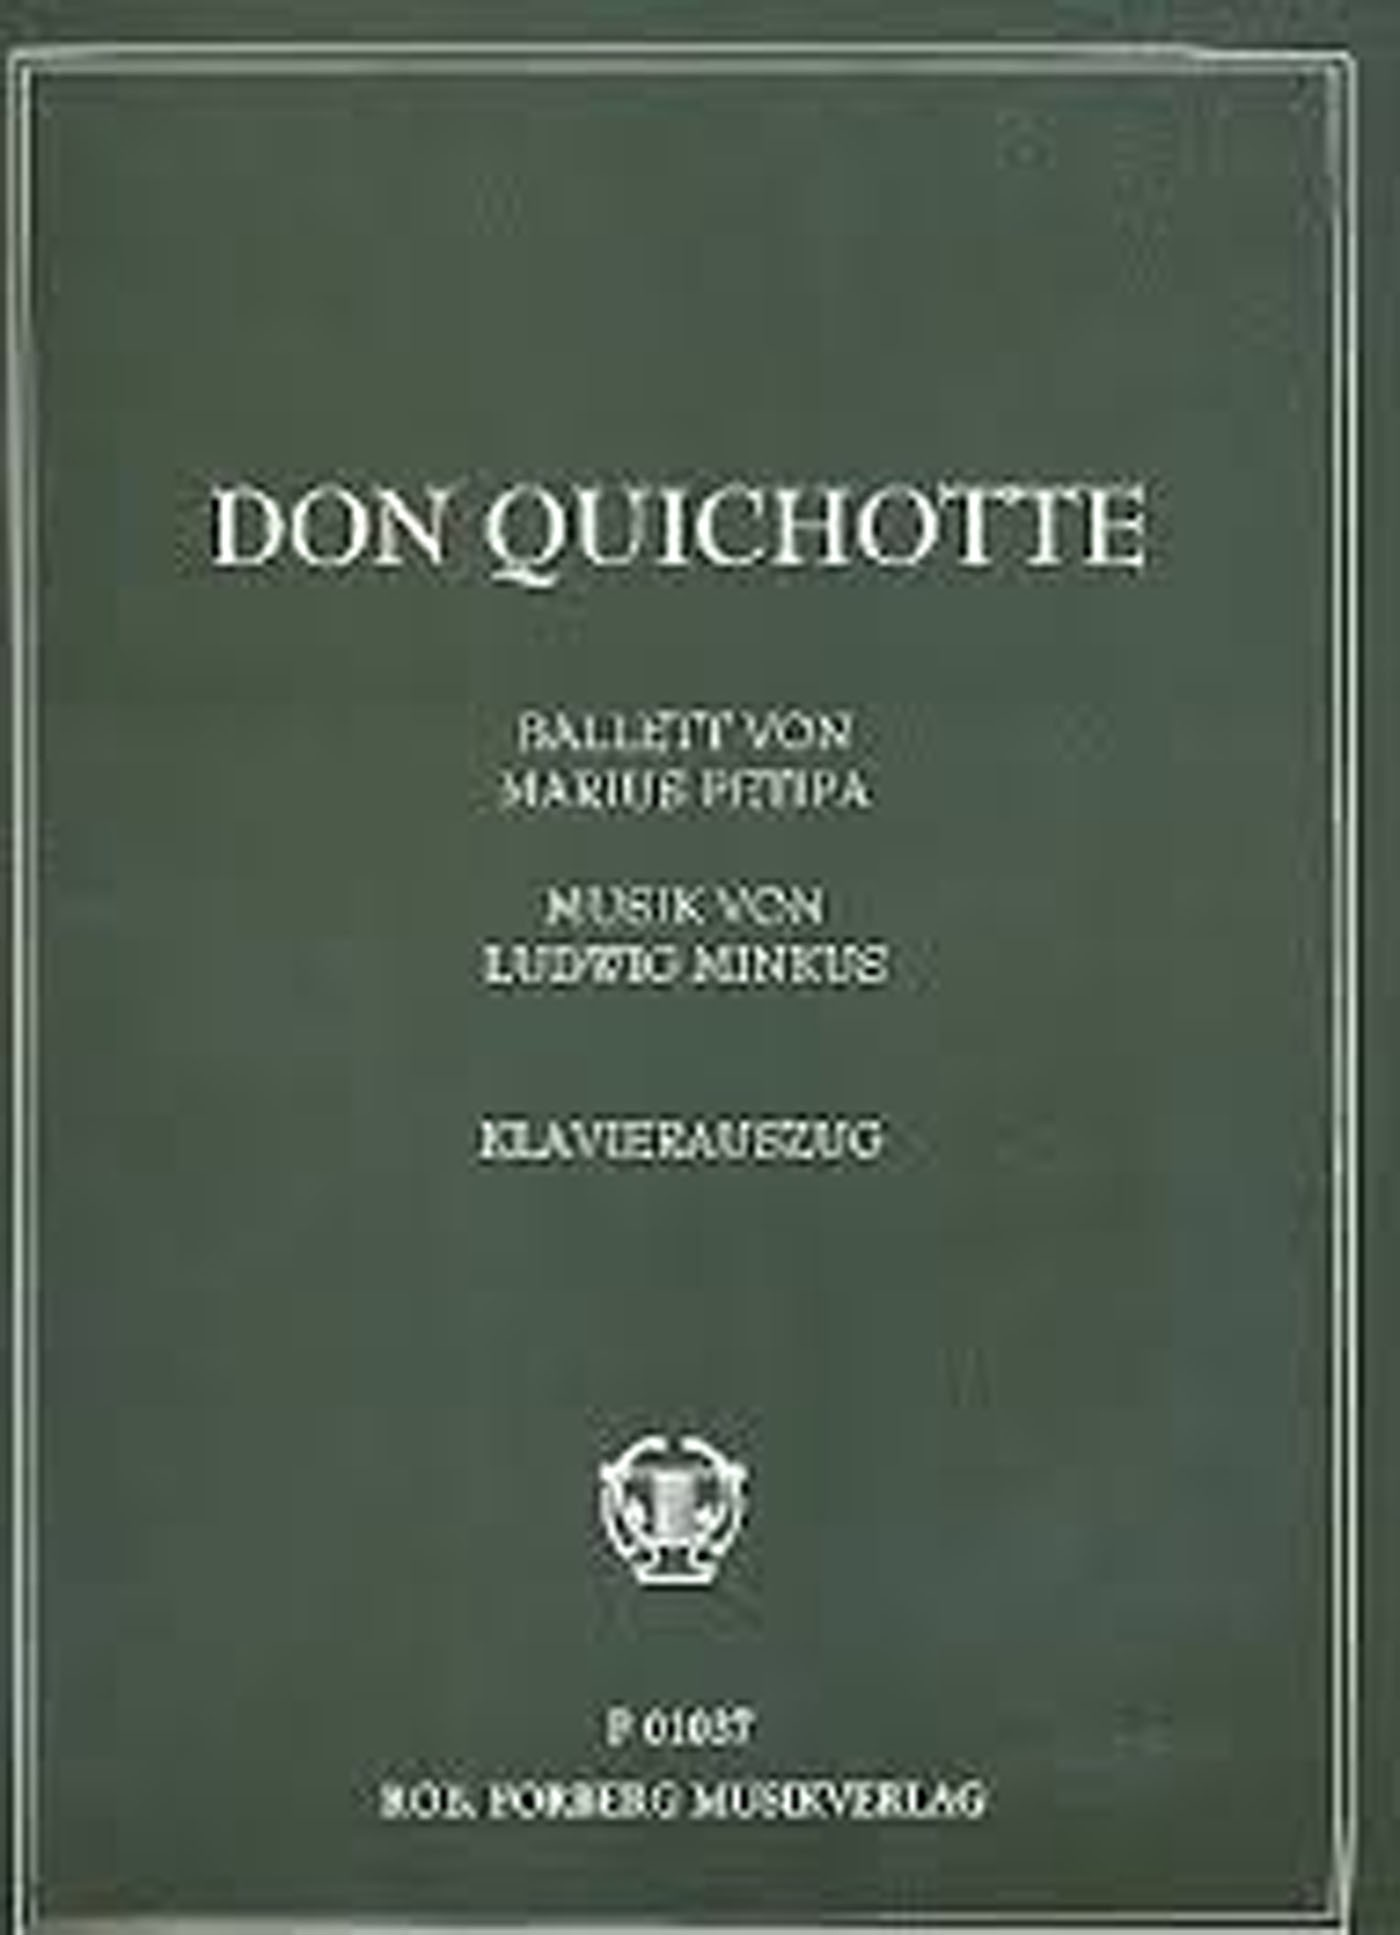 Don Quichotte Ballet Ludwig Minkus Piano Reduction Book F01037 Klavierauszug S16